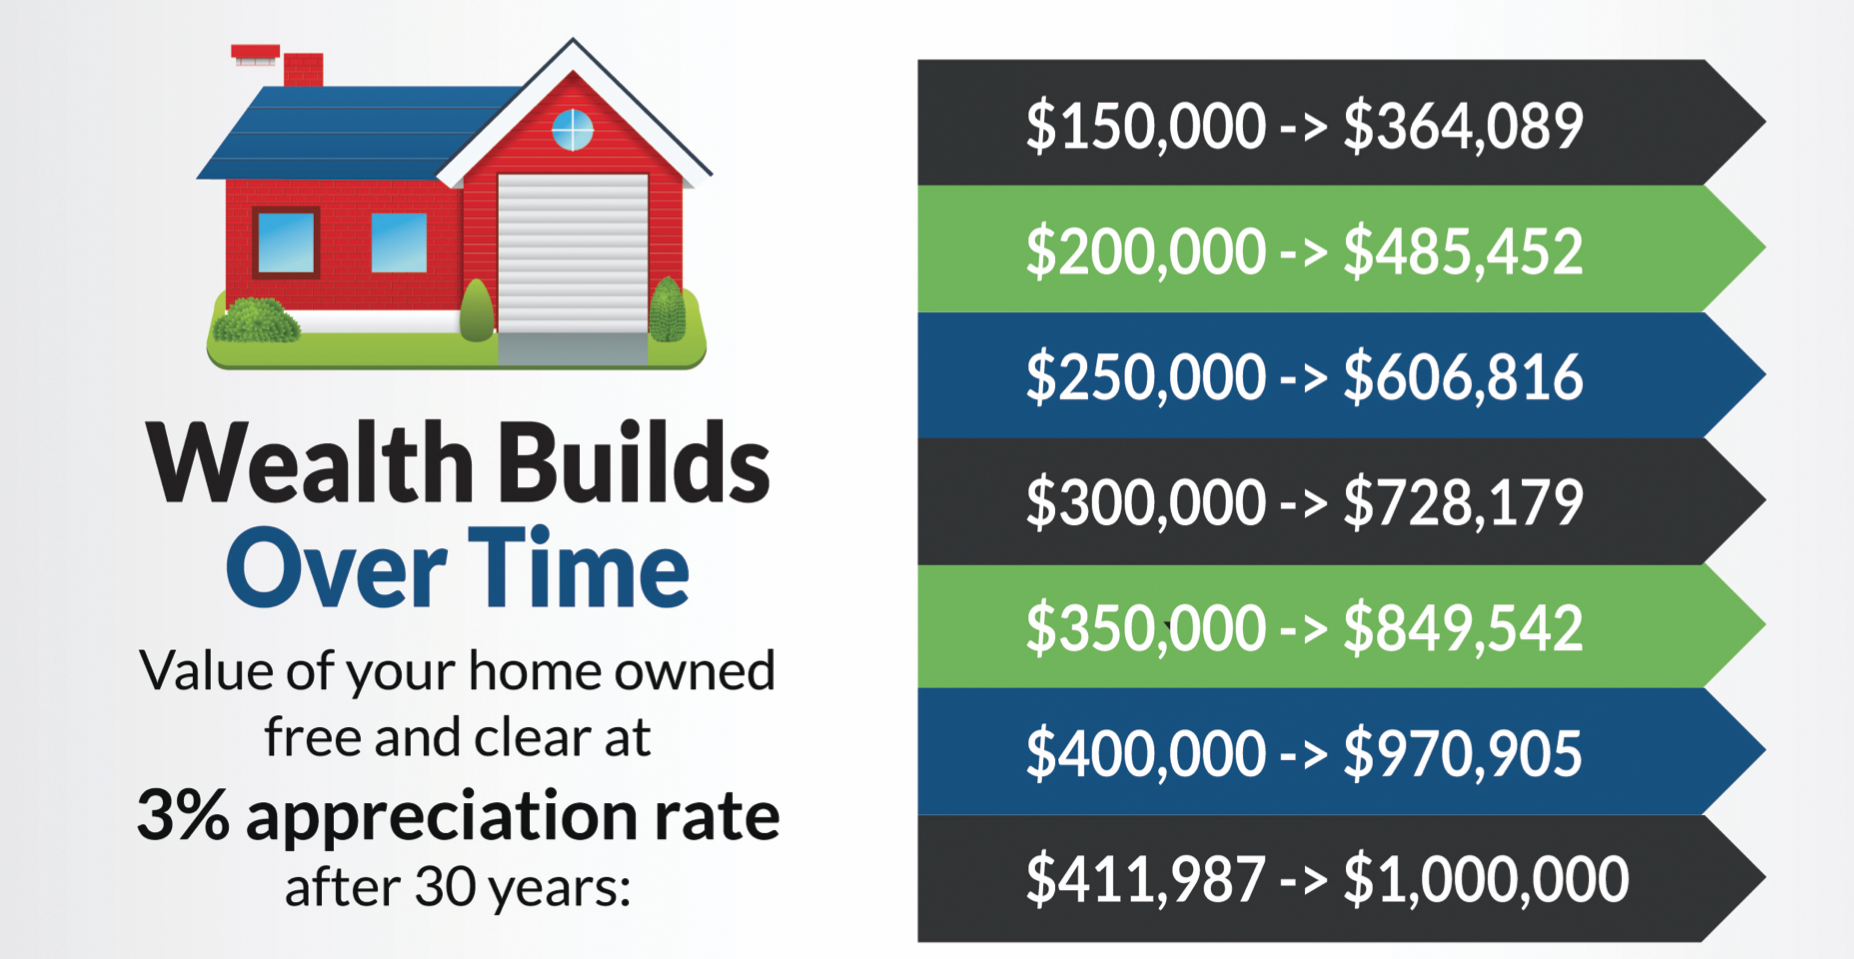 A graphics with a cartoon drawing of a house on the left, and some different numbers on the right that shows what your house is worth after 30 years of ownership with 3% appreciate rate per year. A $411,987 house turns into one million dollars after 30 years.